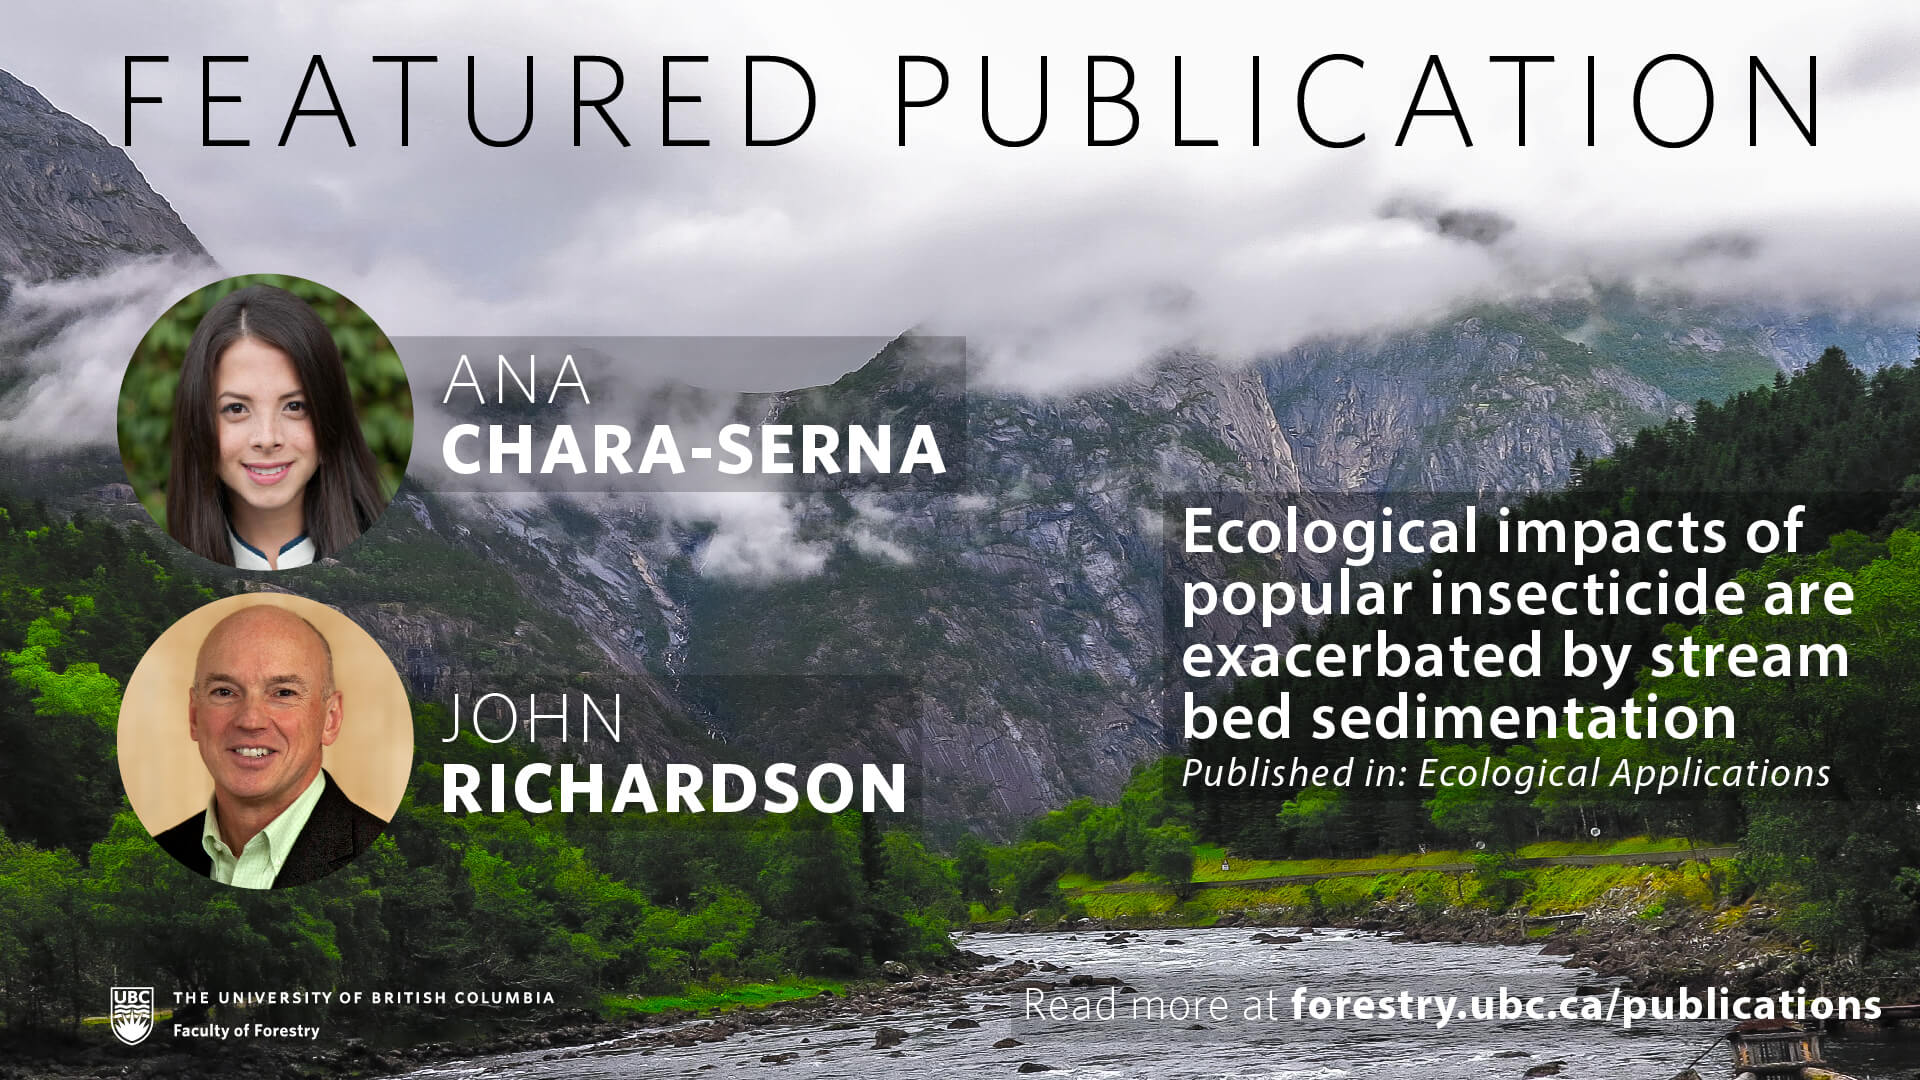 Ecological Impacts of Popular Insecticide are Exacerbated by Stream Bed Sedimentation